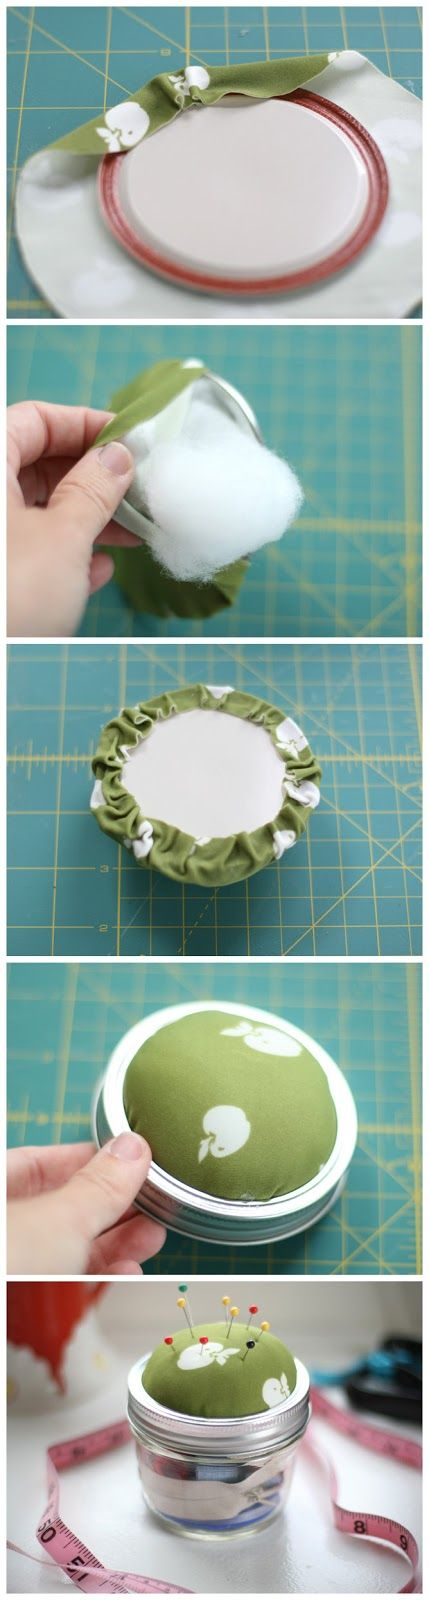 DIY: Mason Jar Sewing Kit: